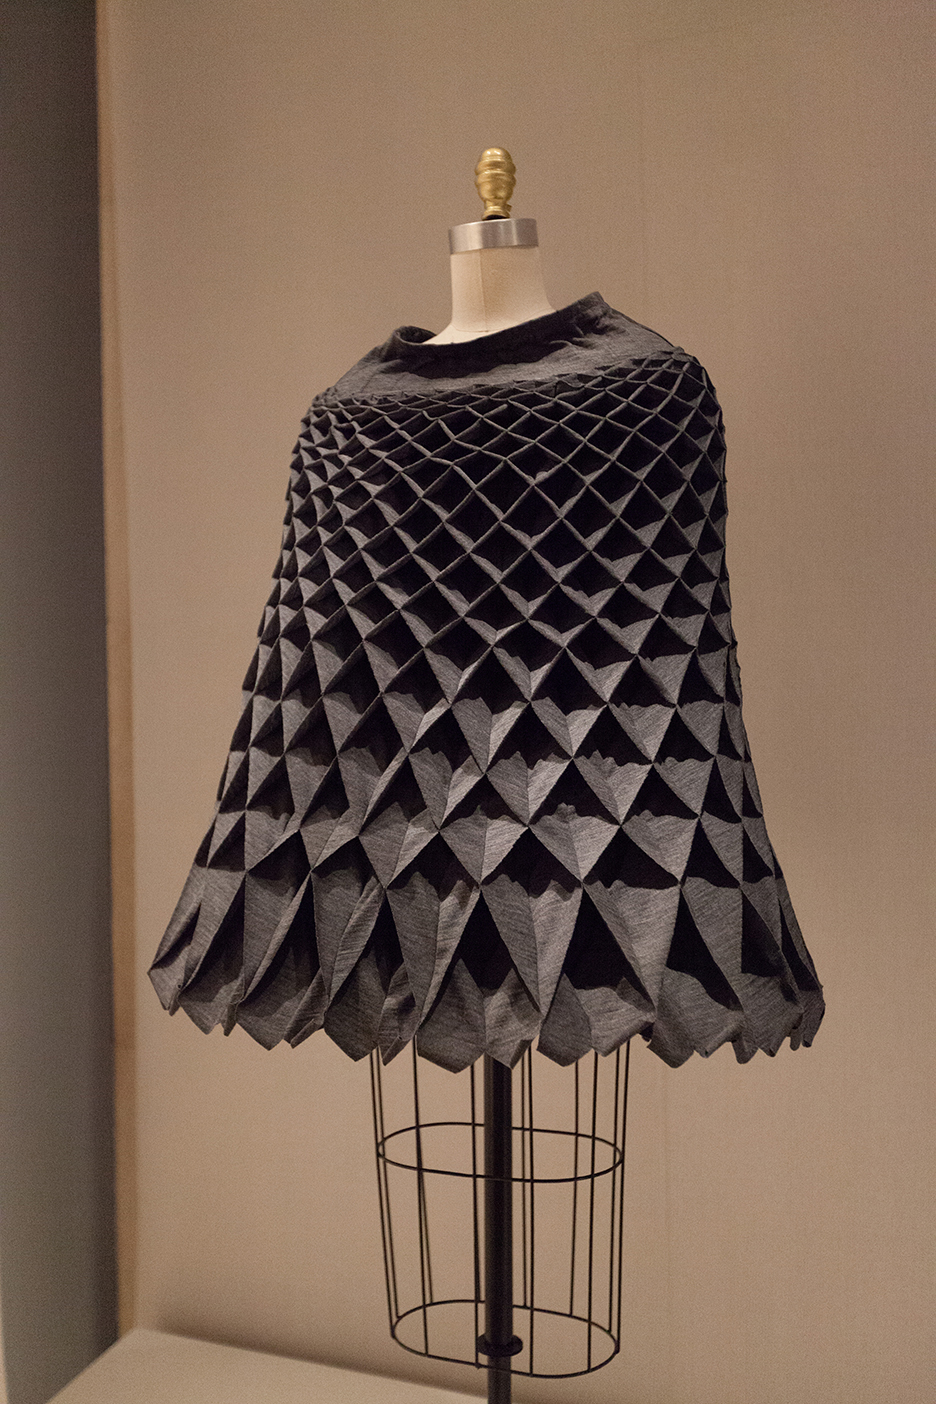 Modern Egg Carton Dress 2015